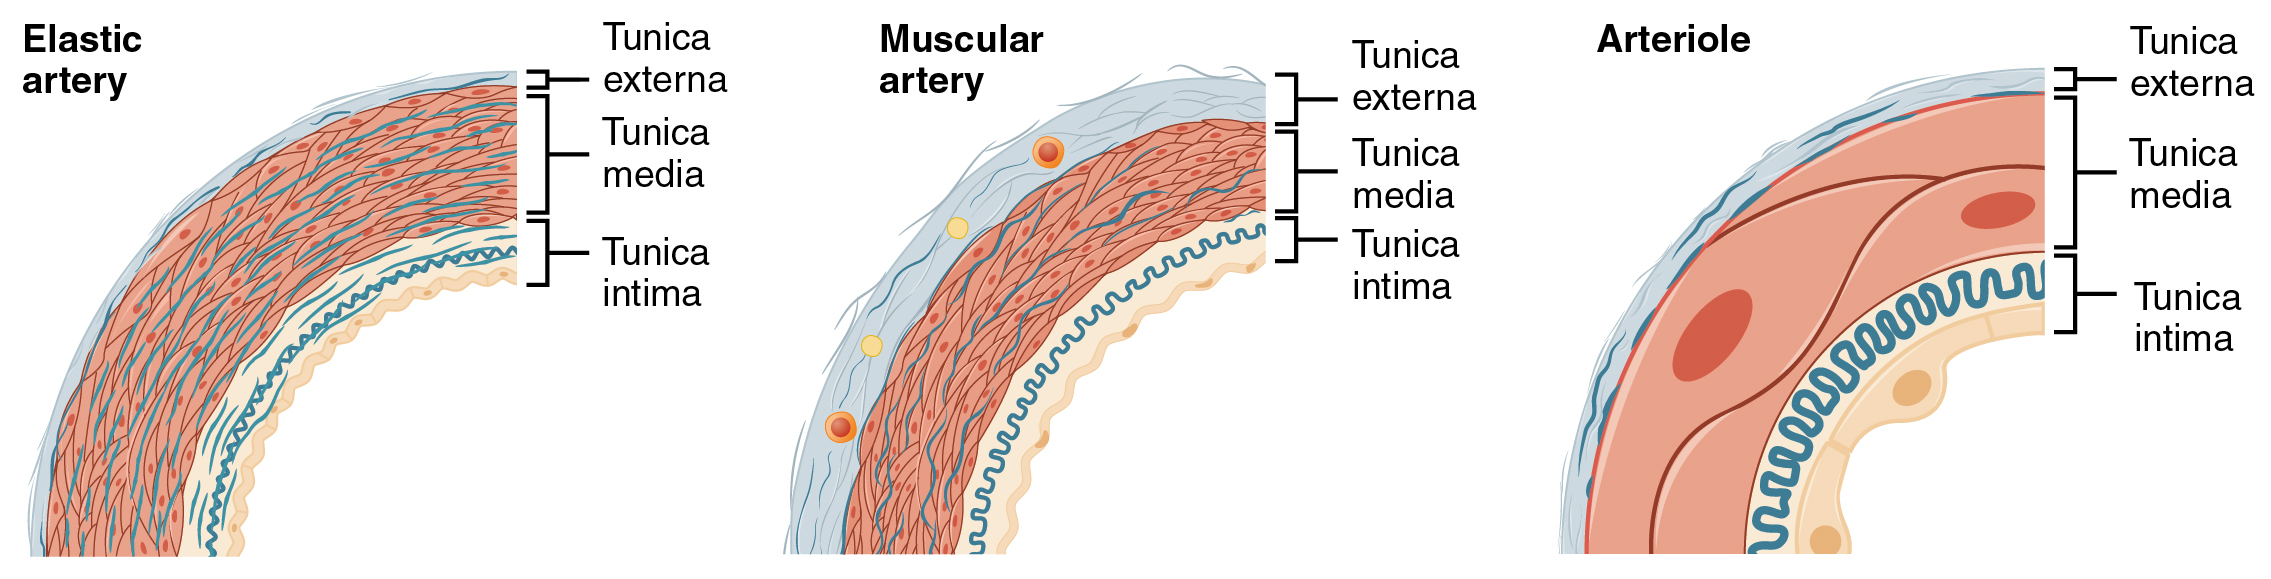 Muscular and Elastic Artery Arteriole